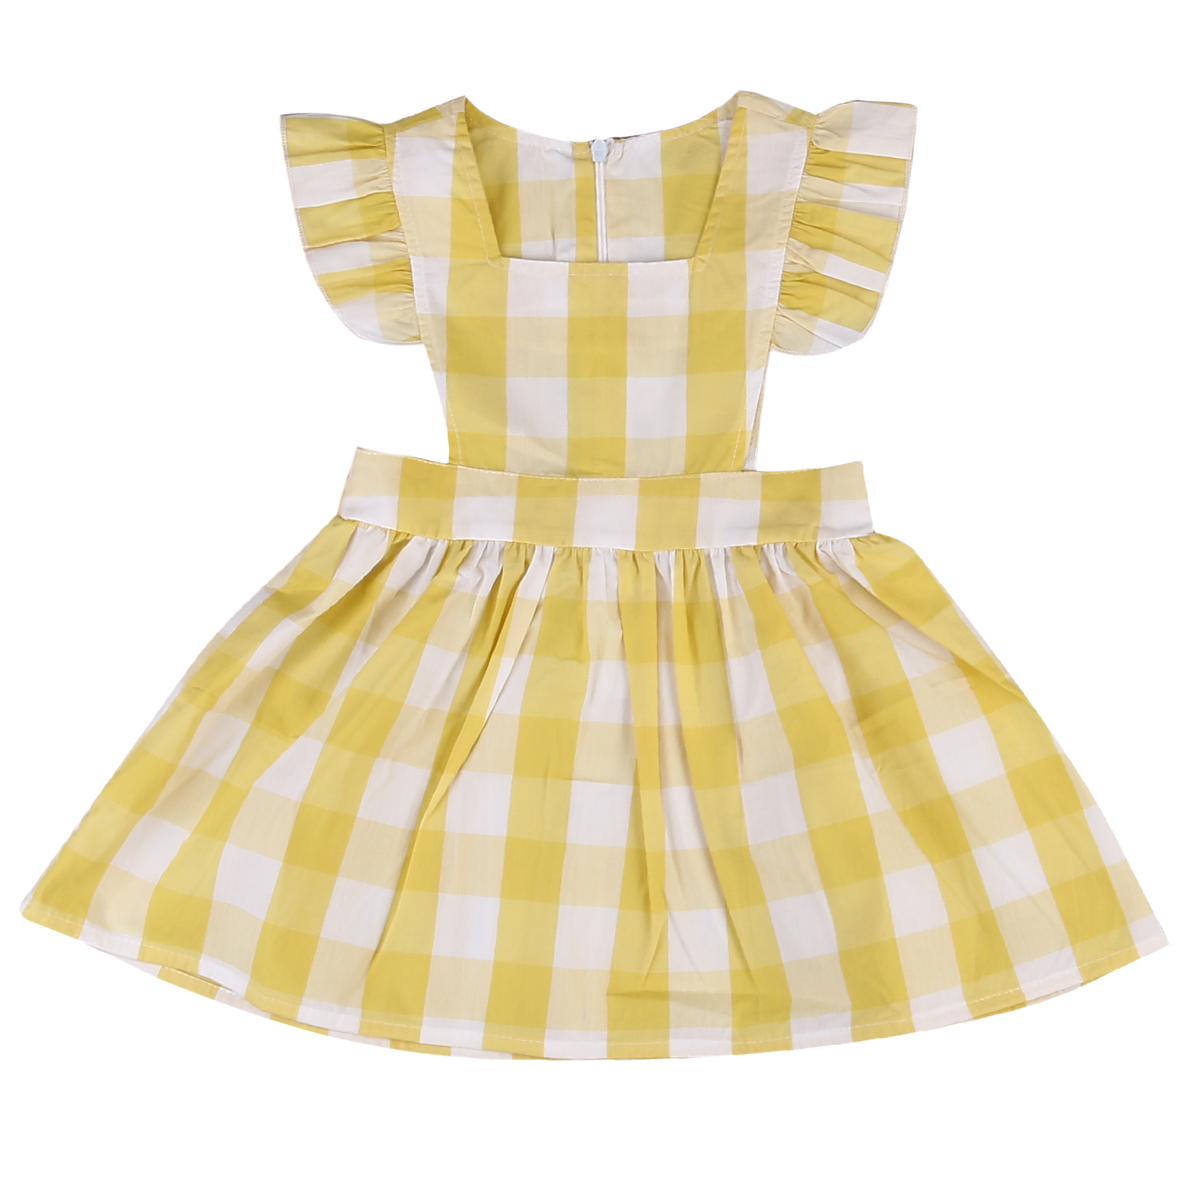 Cute Plaids Kids Baby Girls Princess Party Dresses Children Summer Ruffles Sundress 1-6Y